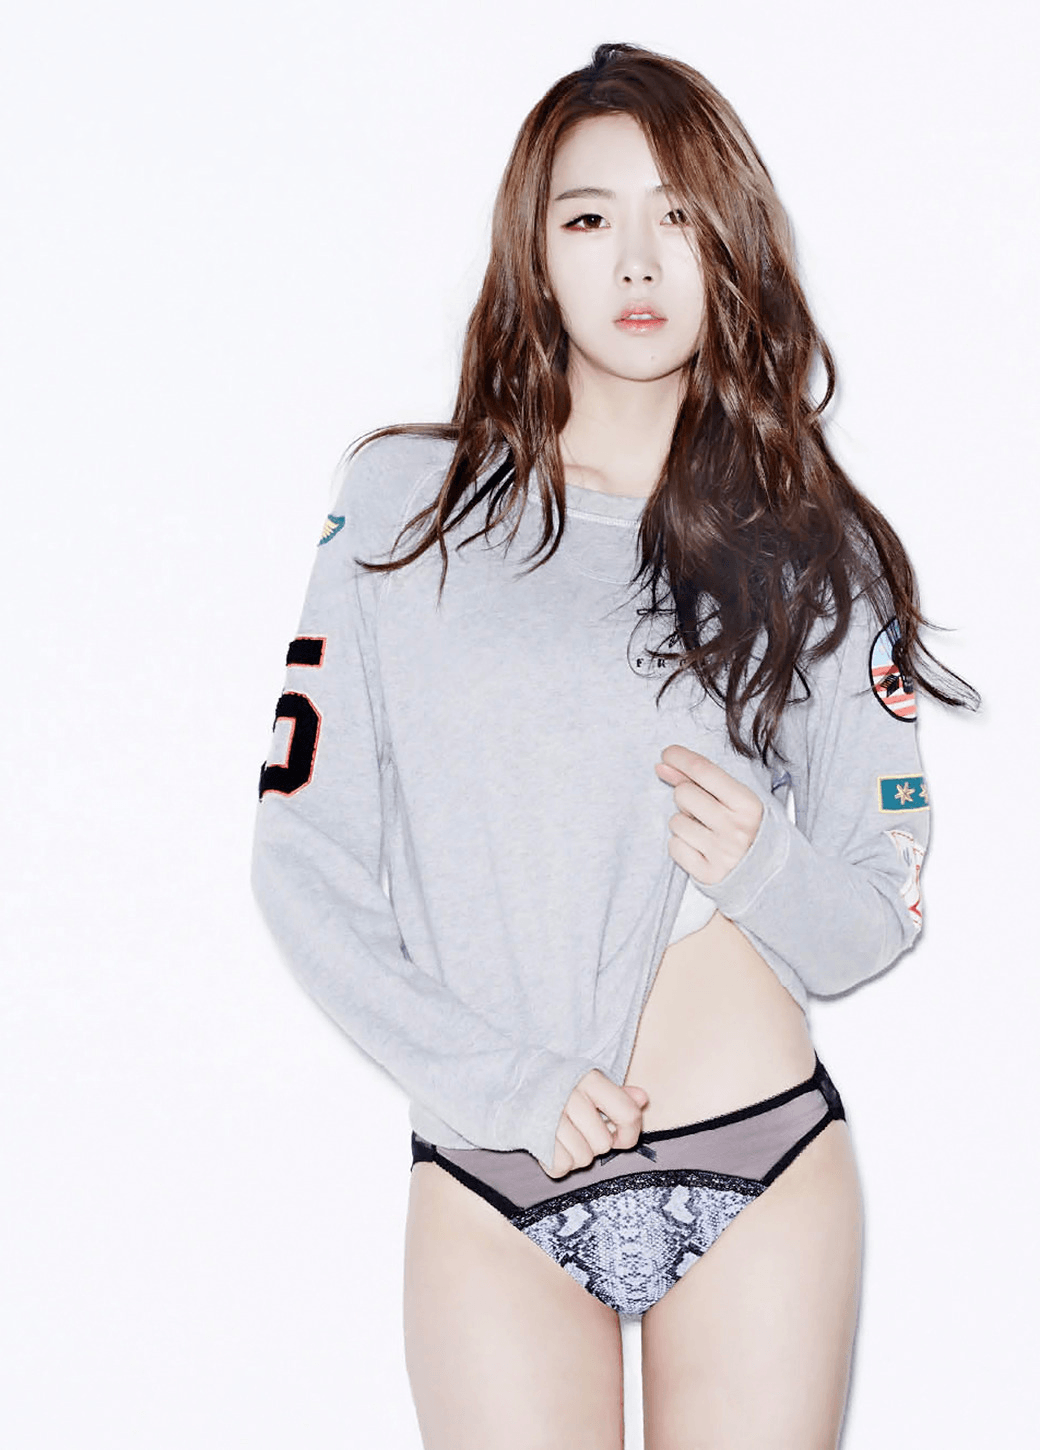 20+ idols you never knew did underwear photoshoots